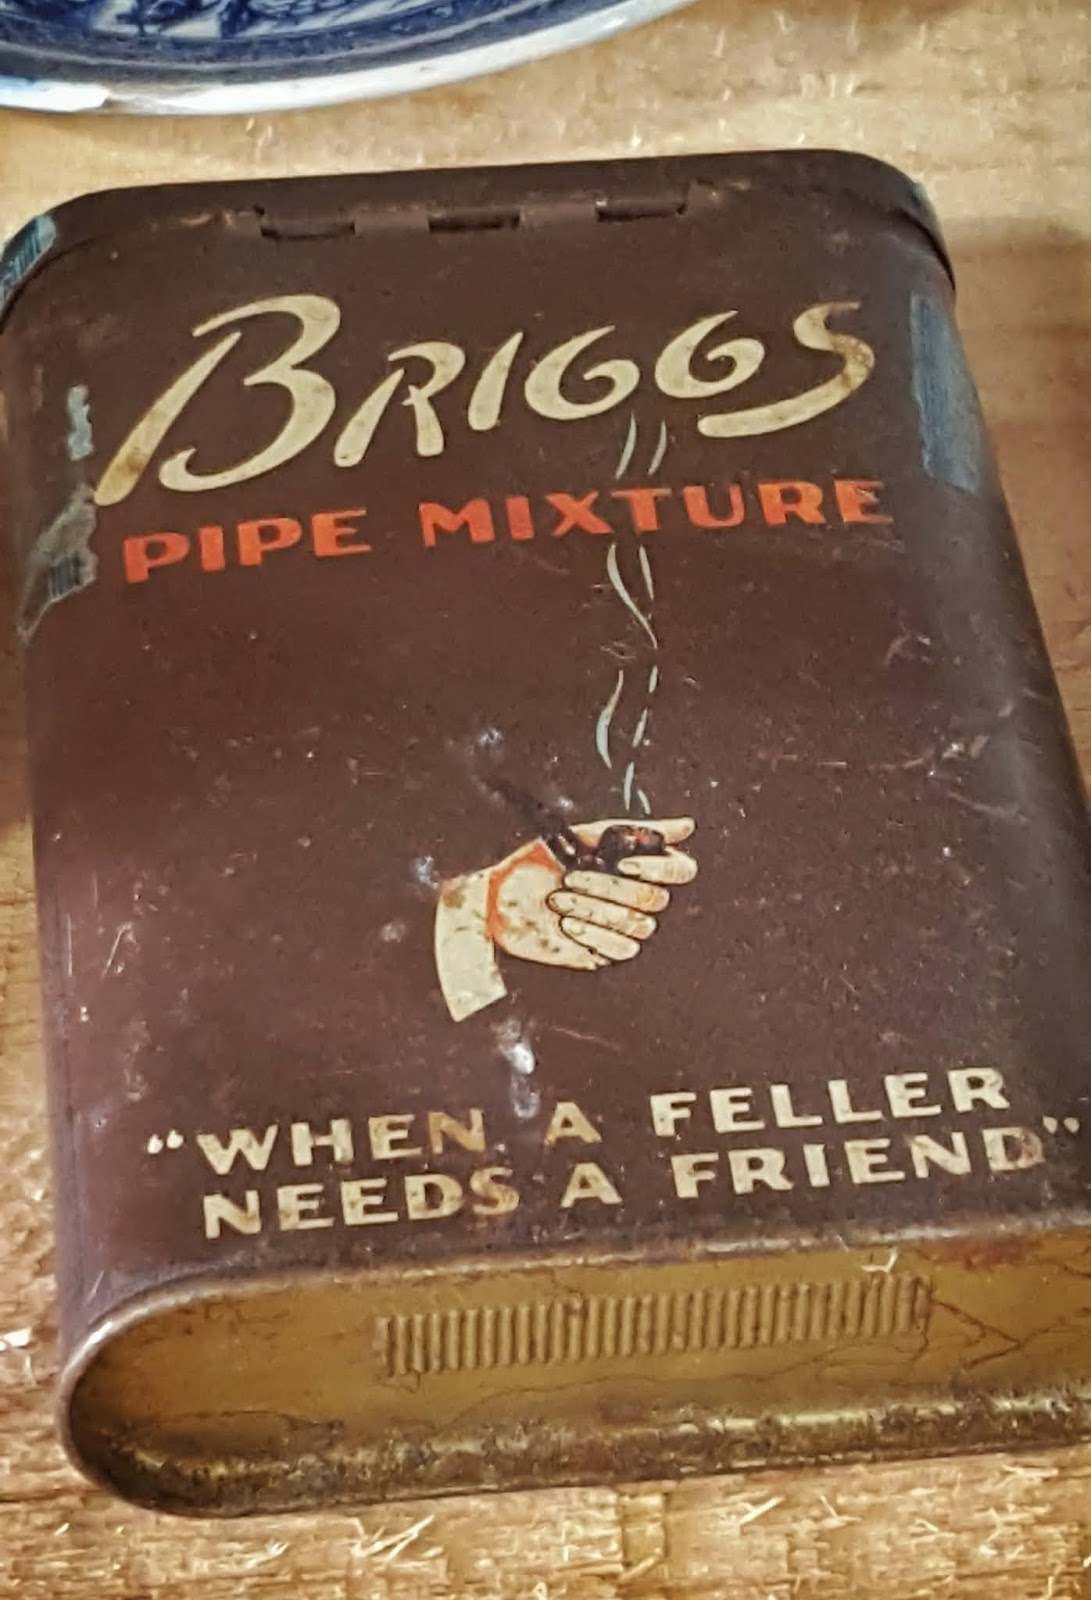 photo of an old tobacco tin